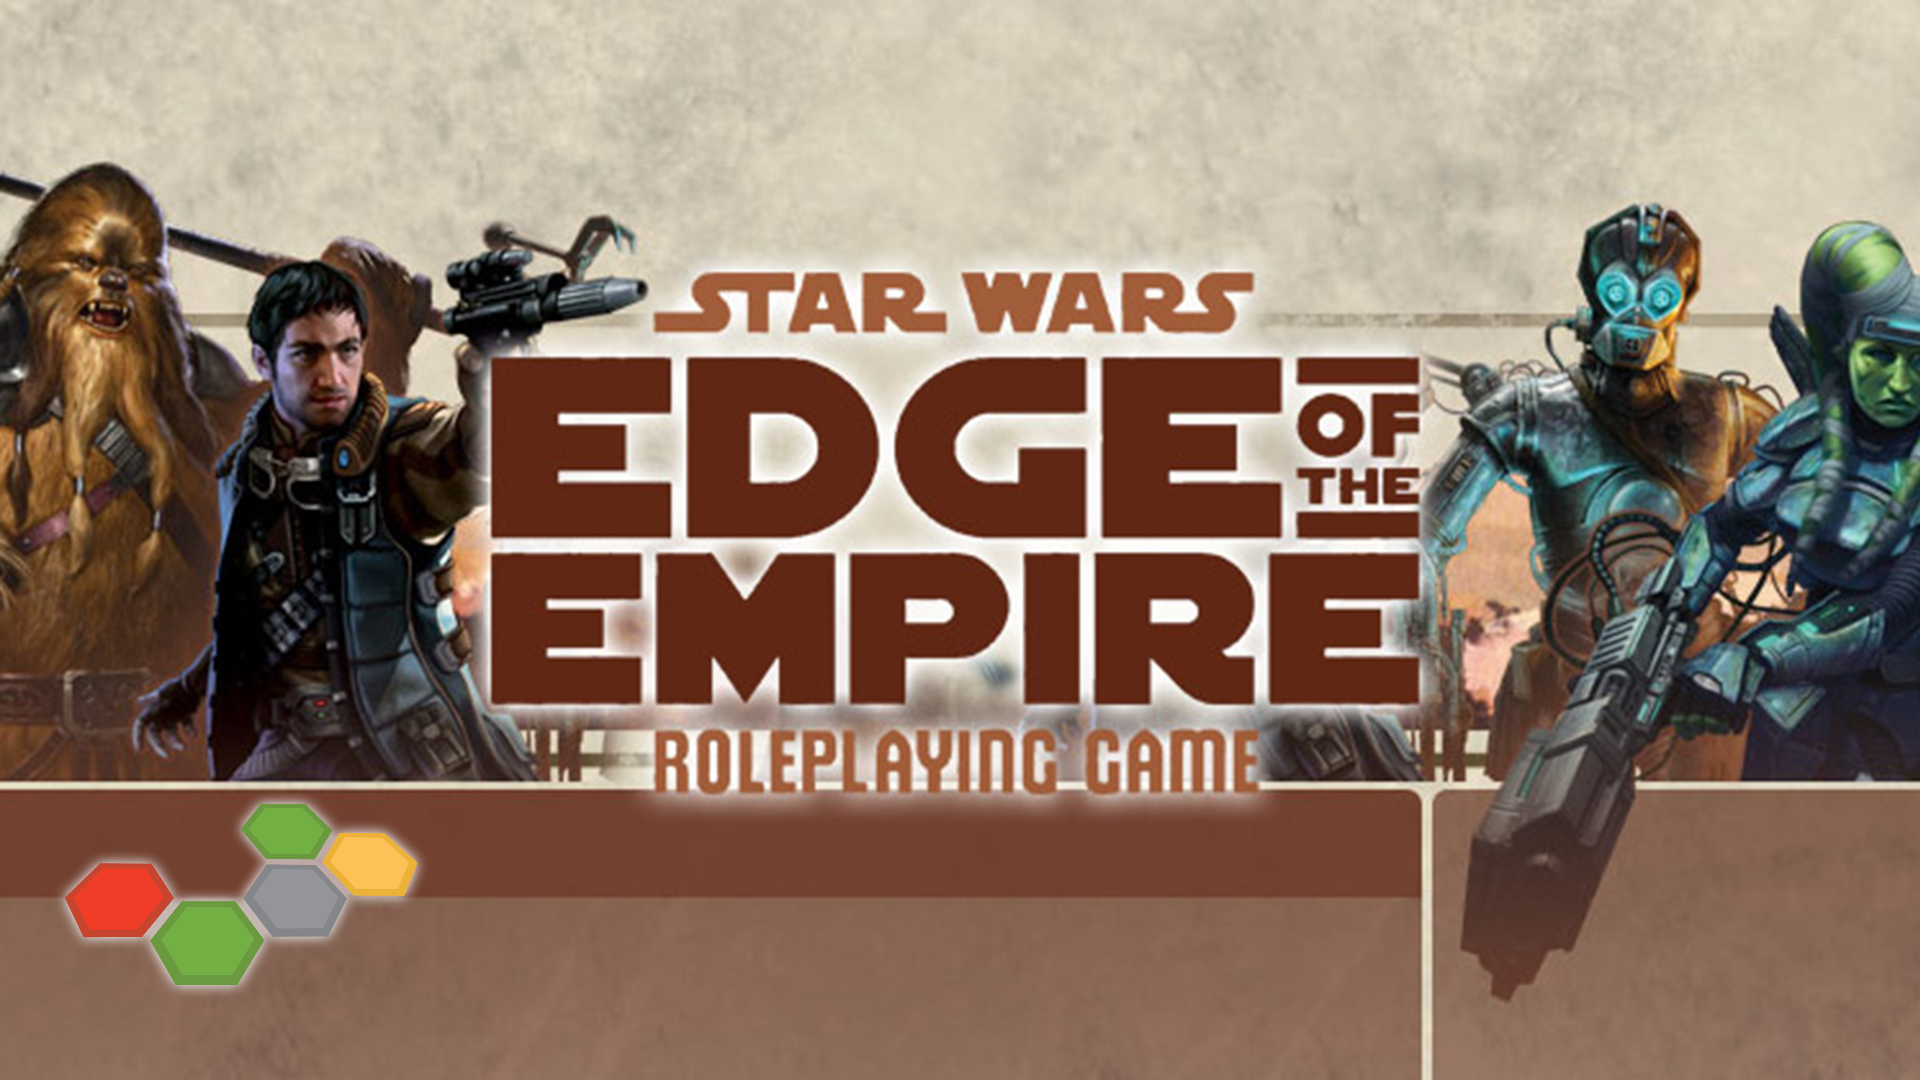 Edge of the Empire Event Image.png